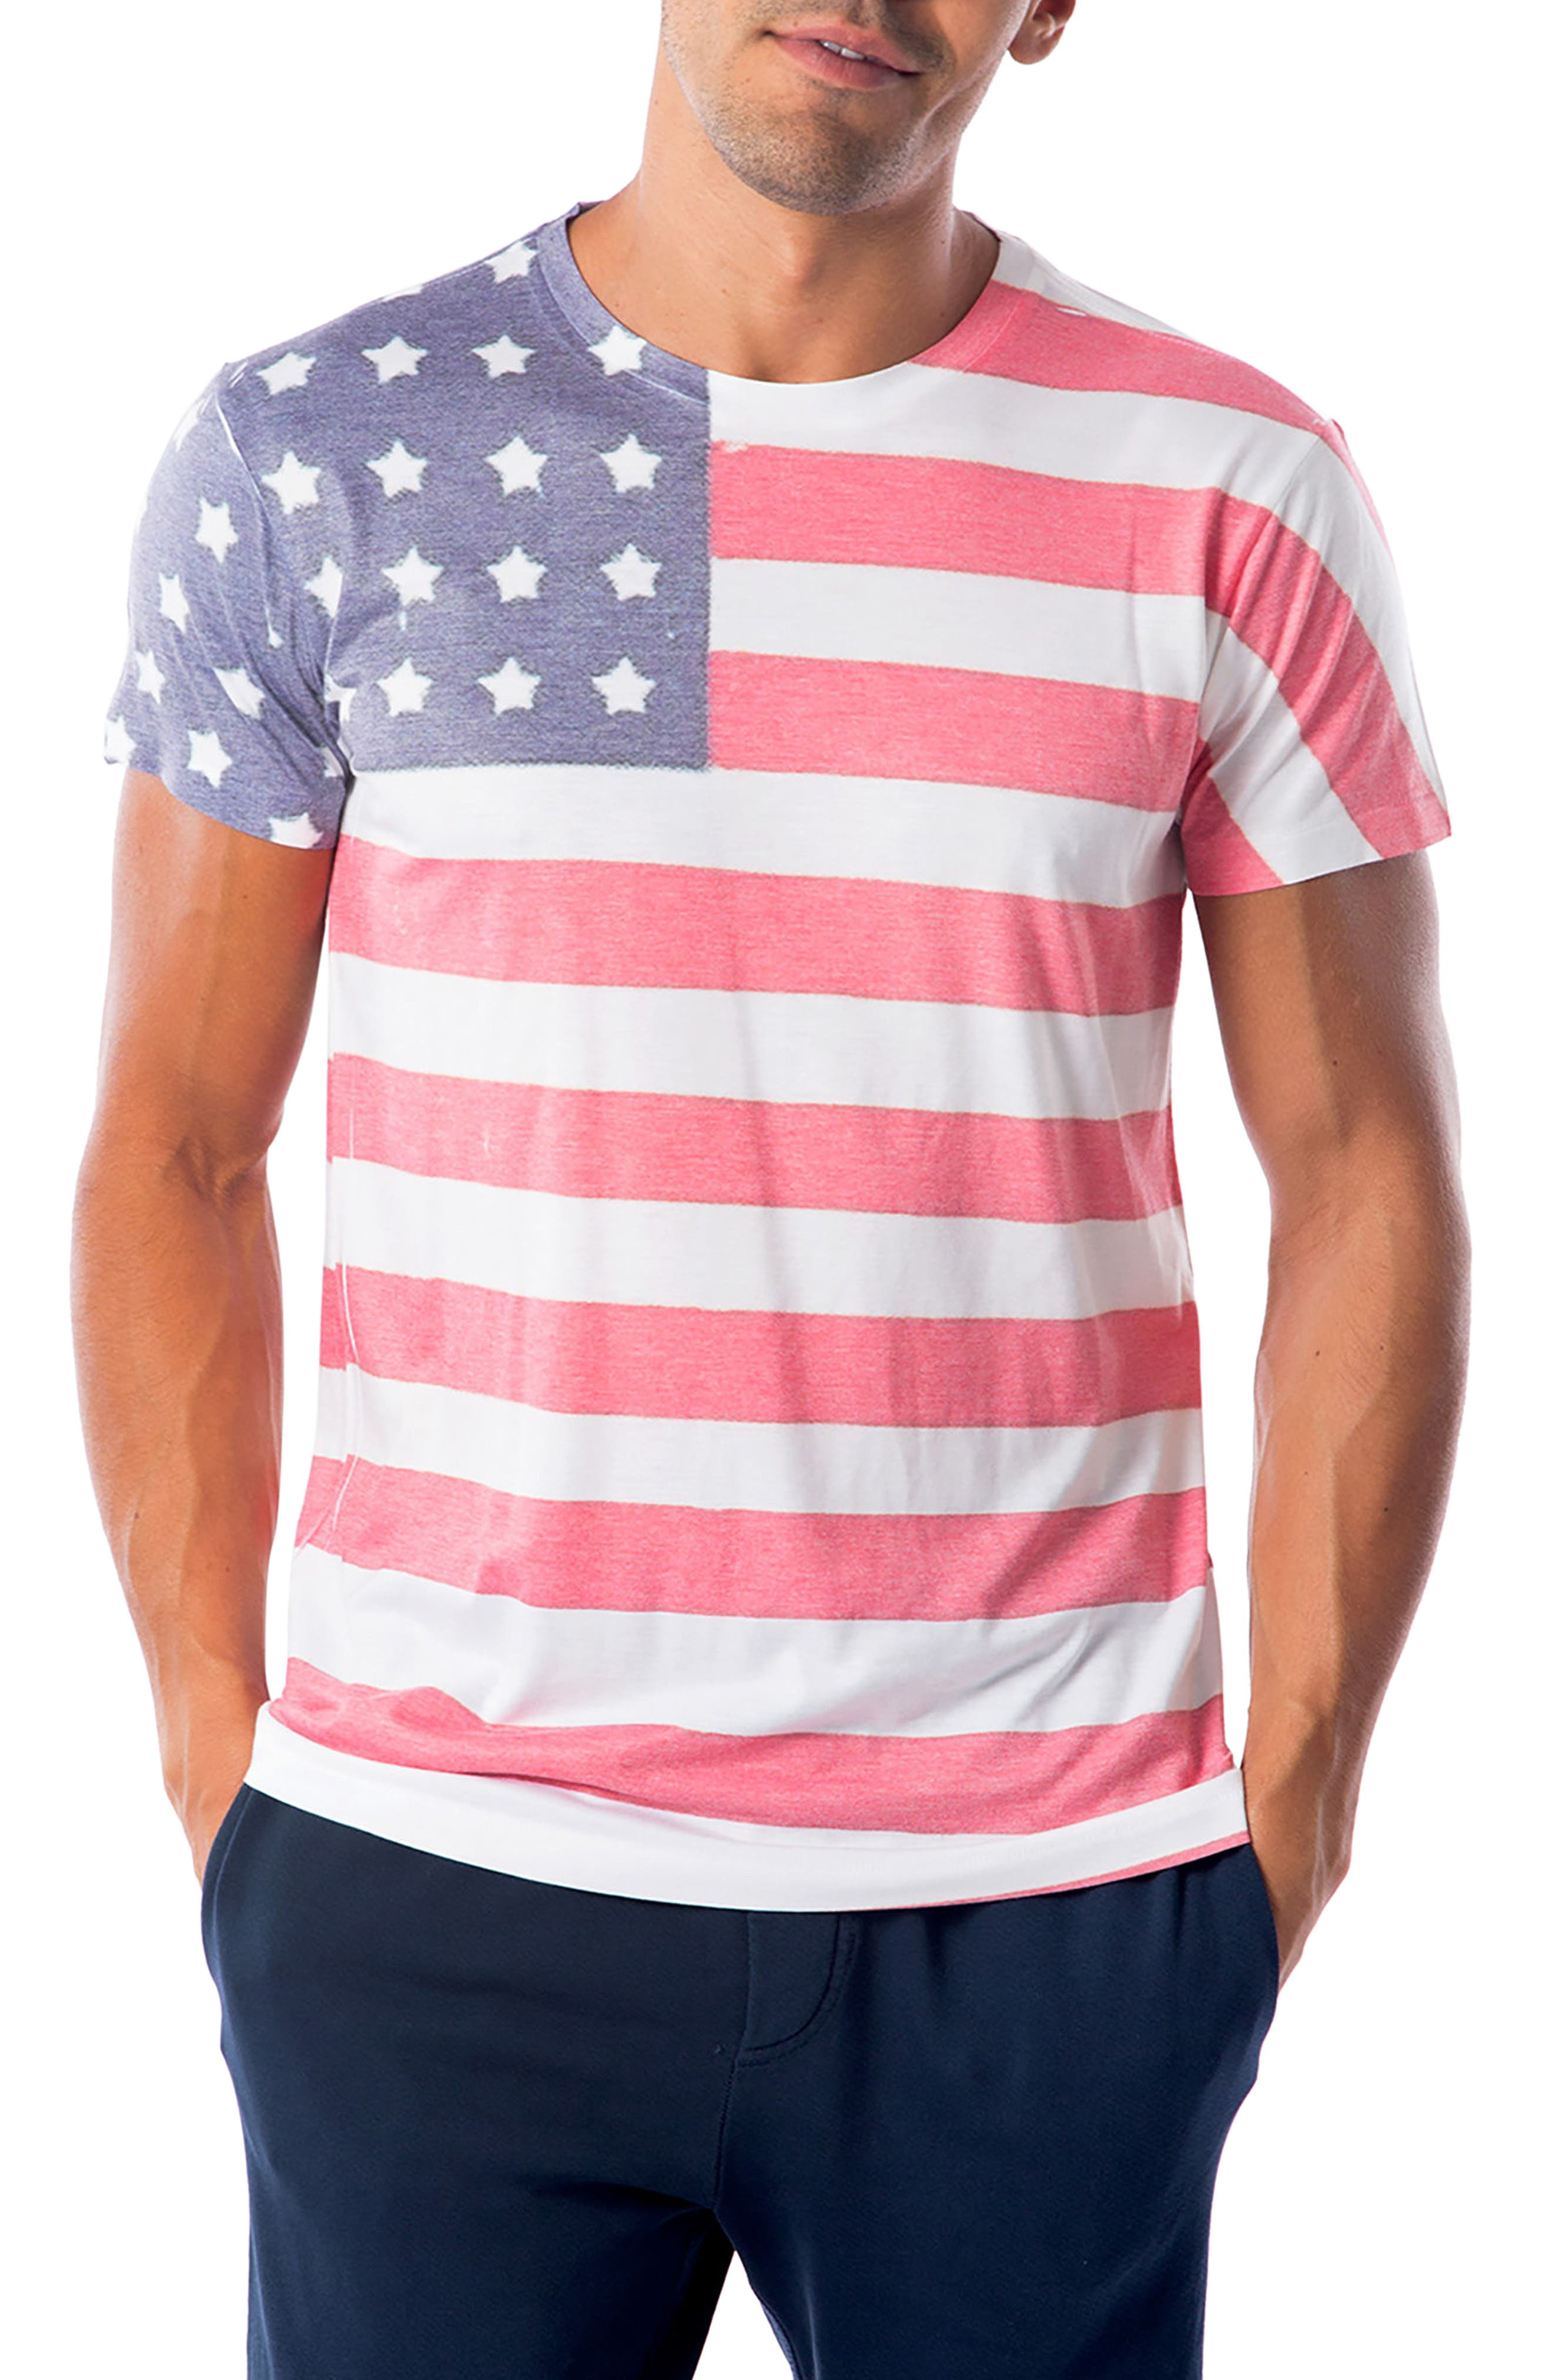 Freedom T-Shirt,                             Main thumbnail 1, color,                             100